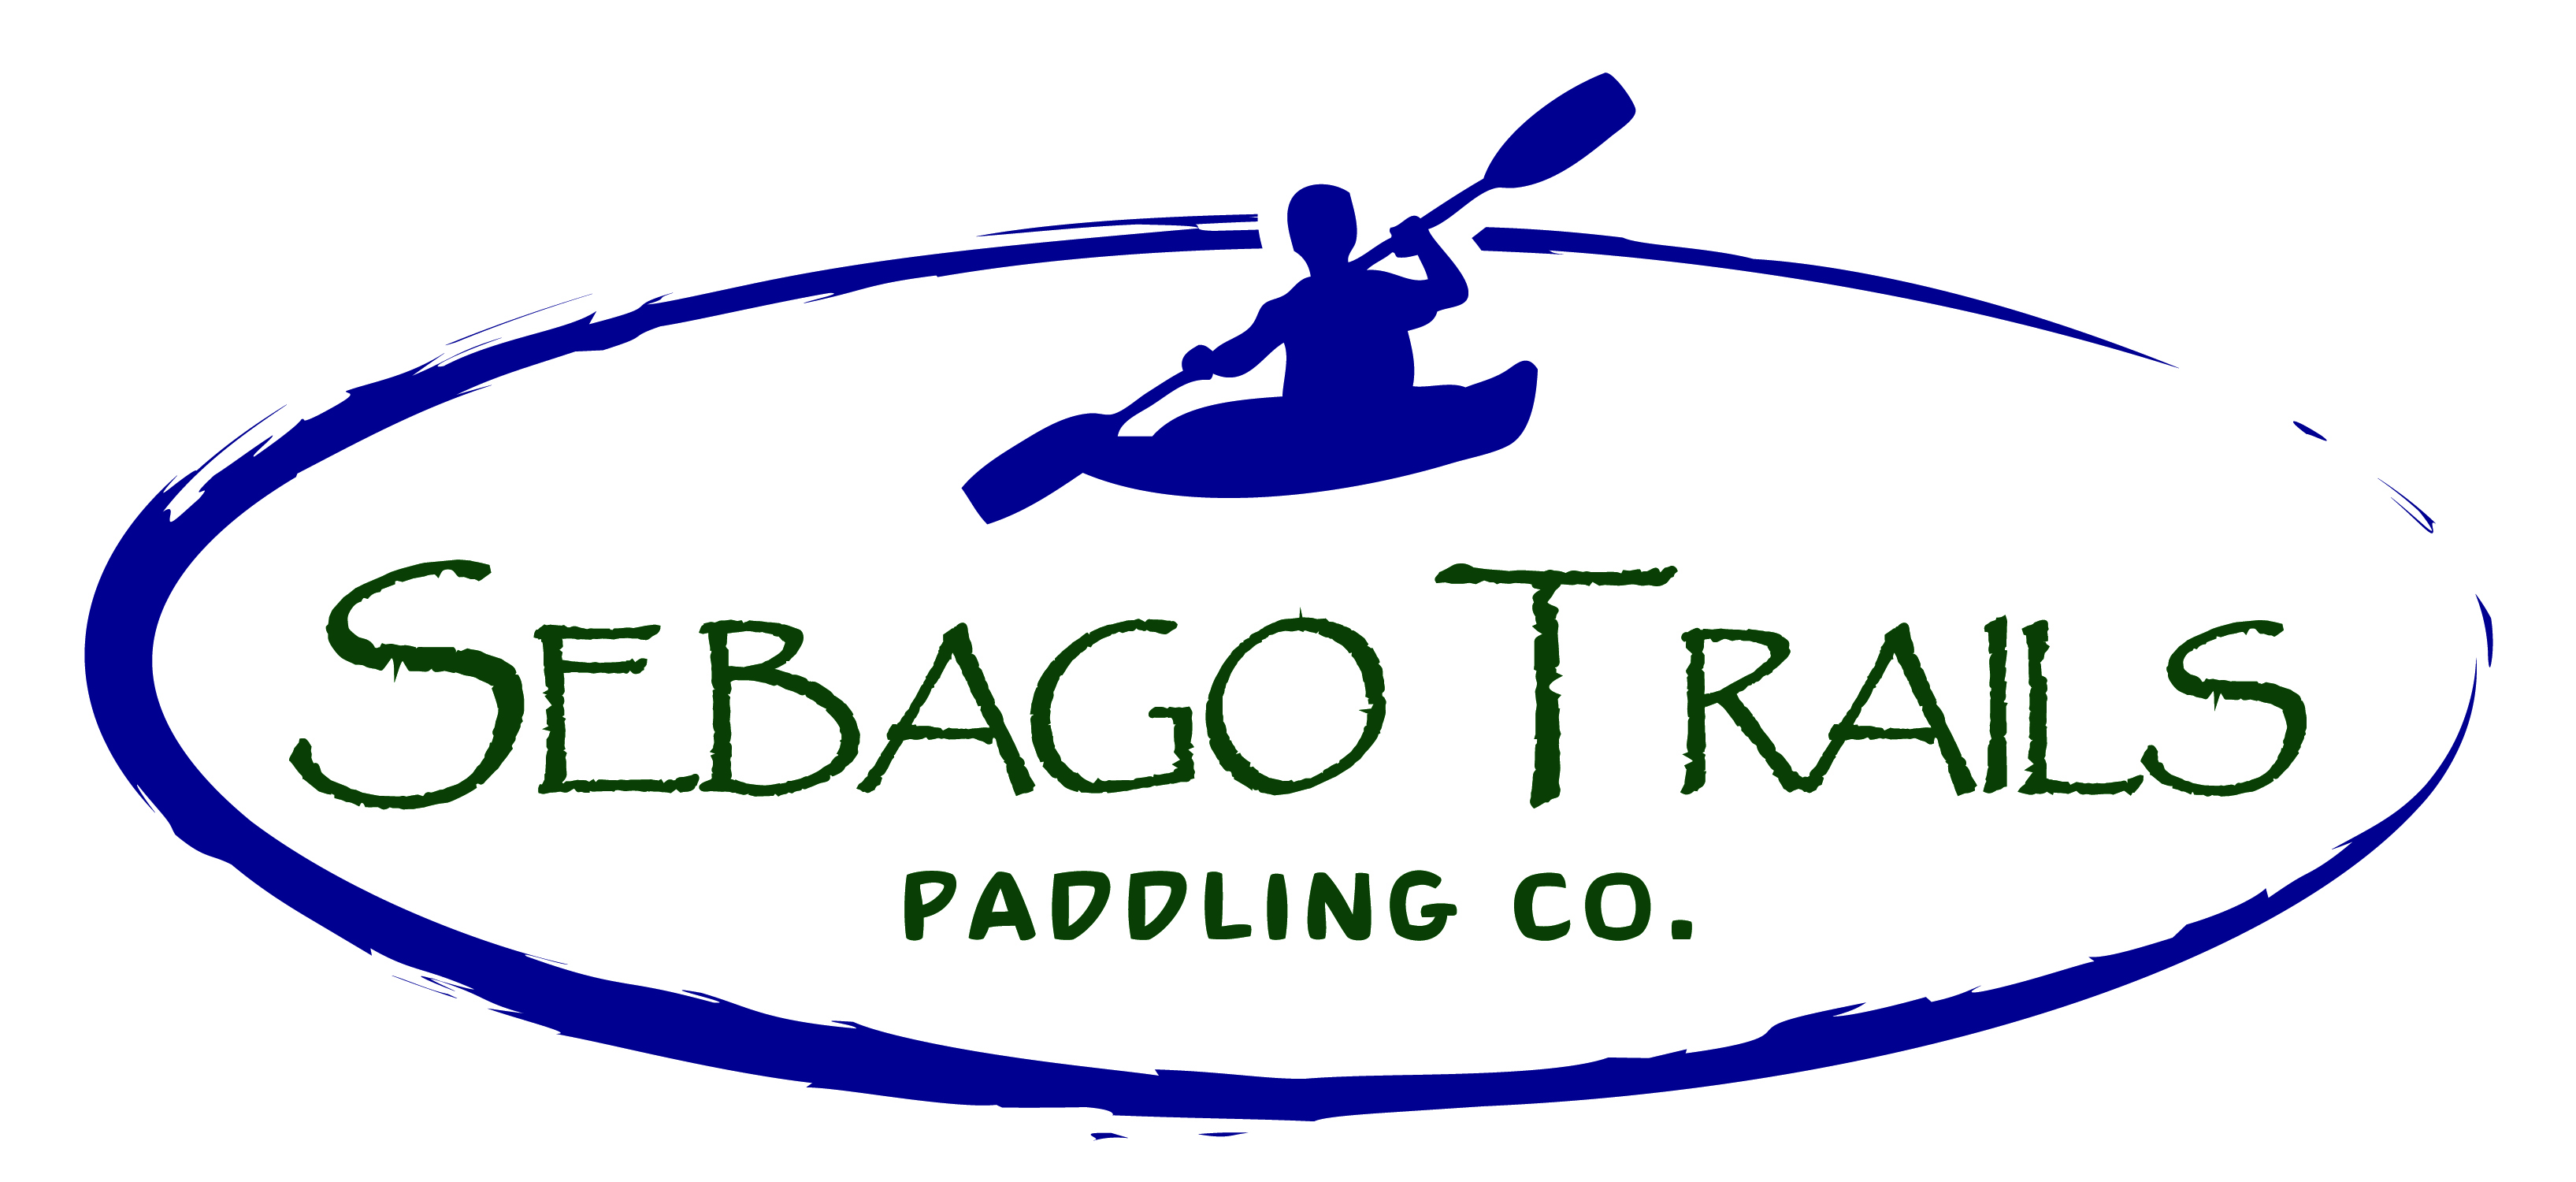 Sebago Trails Paddling Company